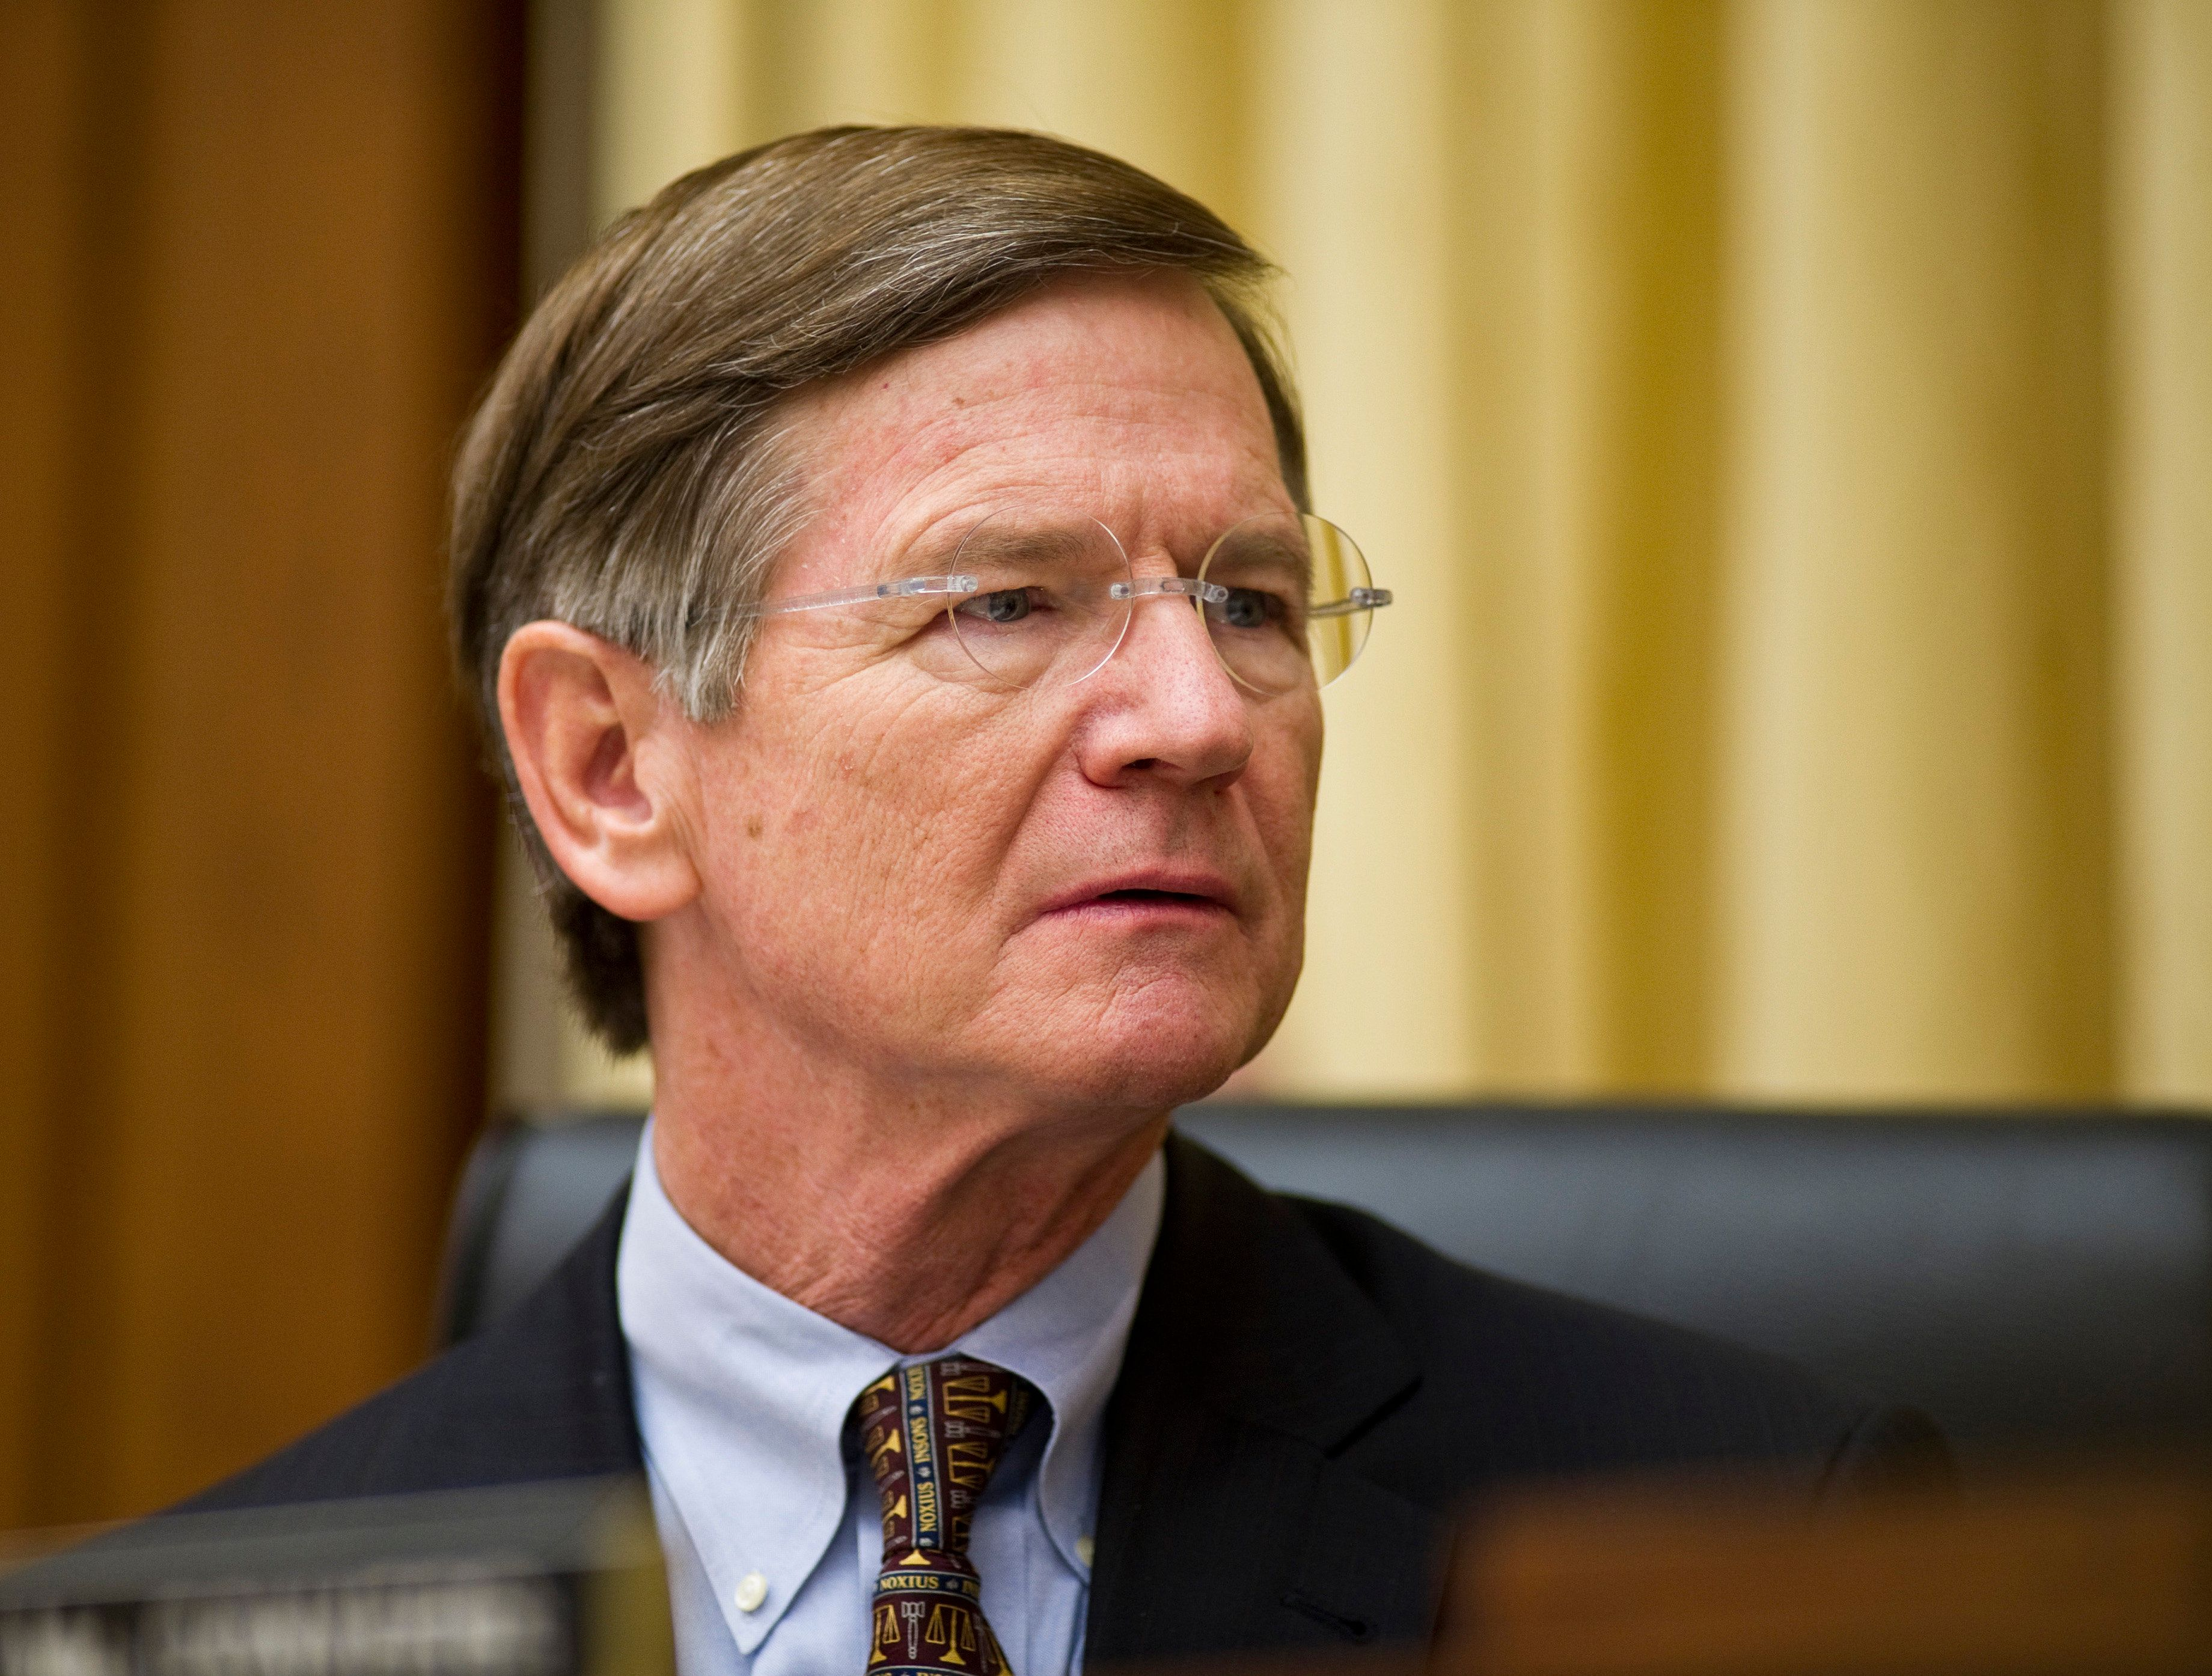 WASHINGTON, DC- Jan. 20: Chairman Lamar Smith, R-Texas, during the House Judiciary hearing on medical liability issues. (Photo by Scott J. Ferrell/Congressional Quarterly/Getty Images)